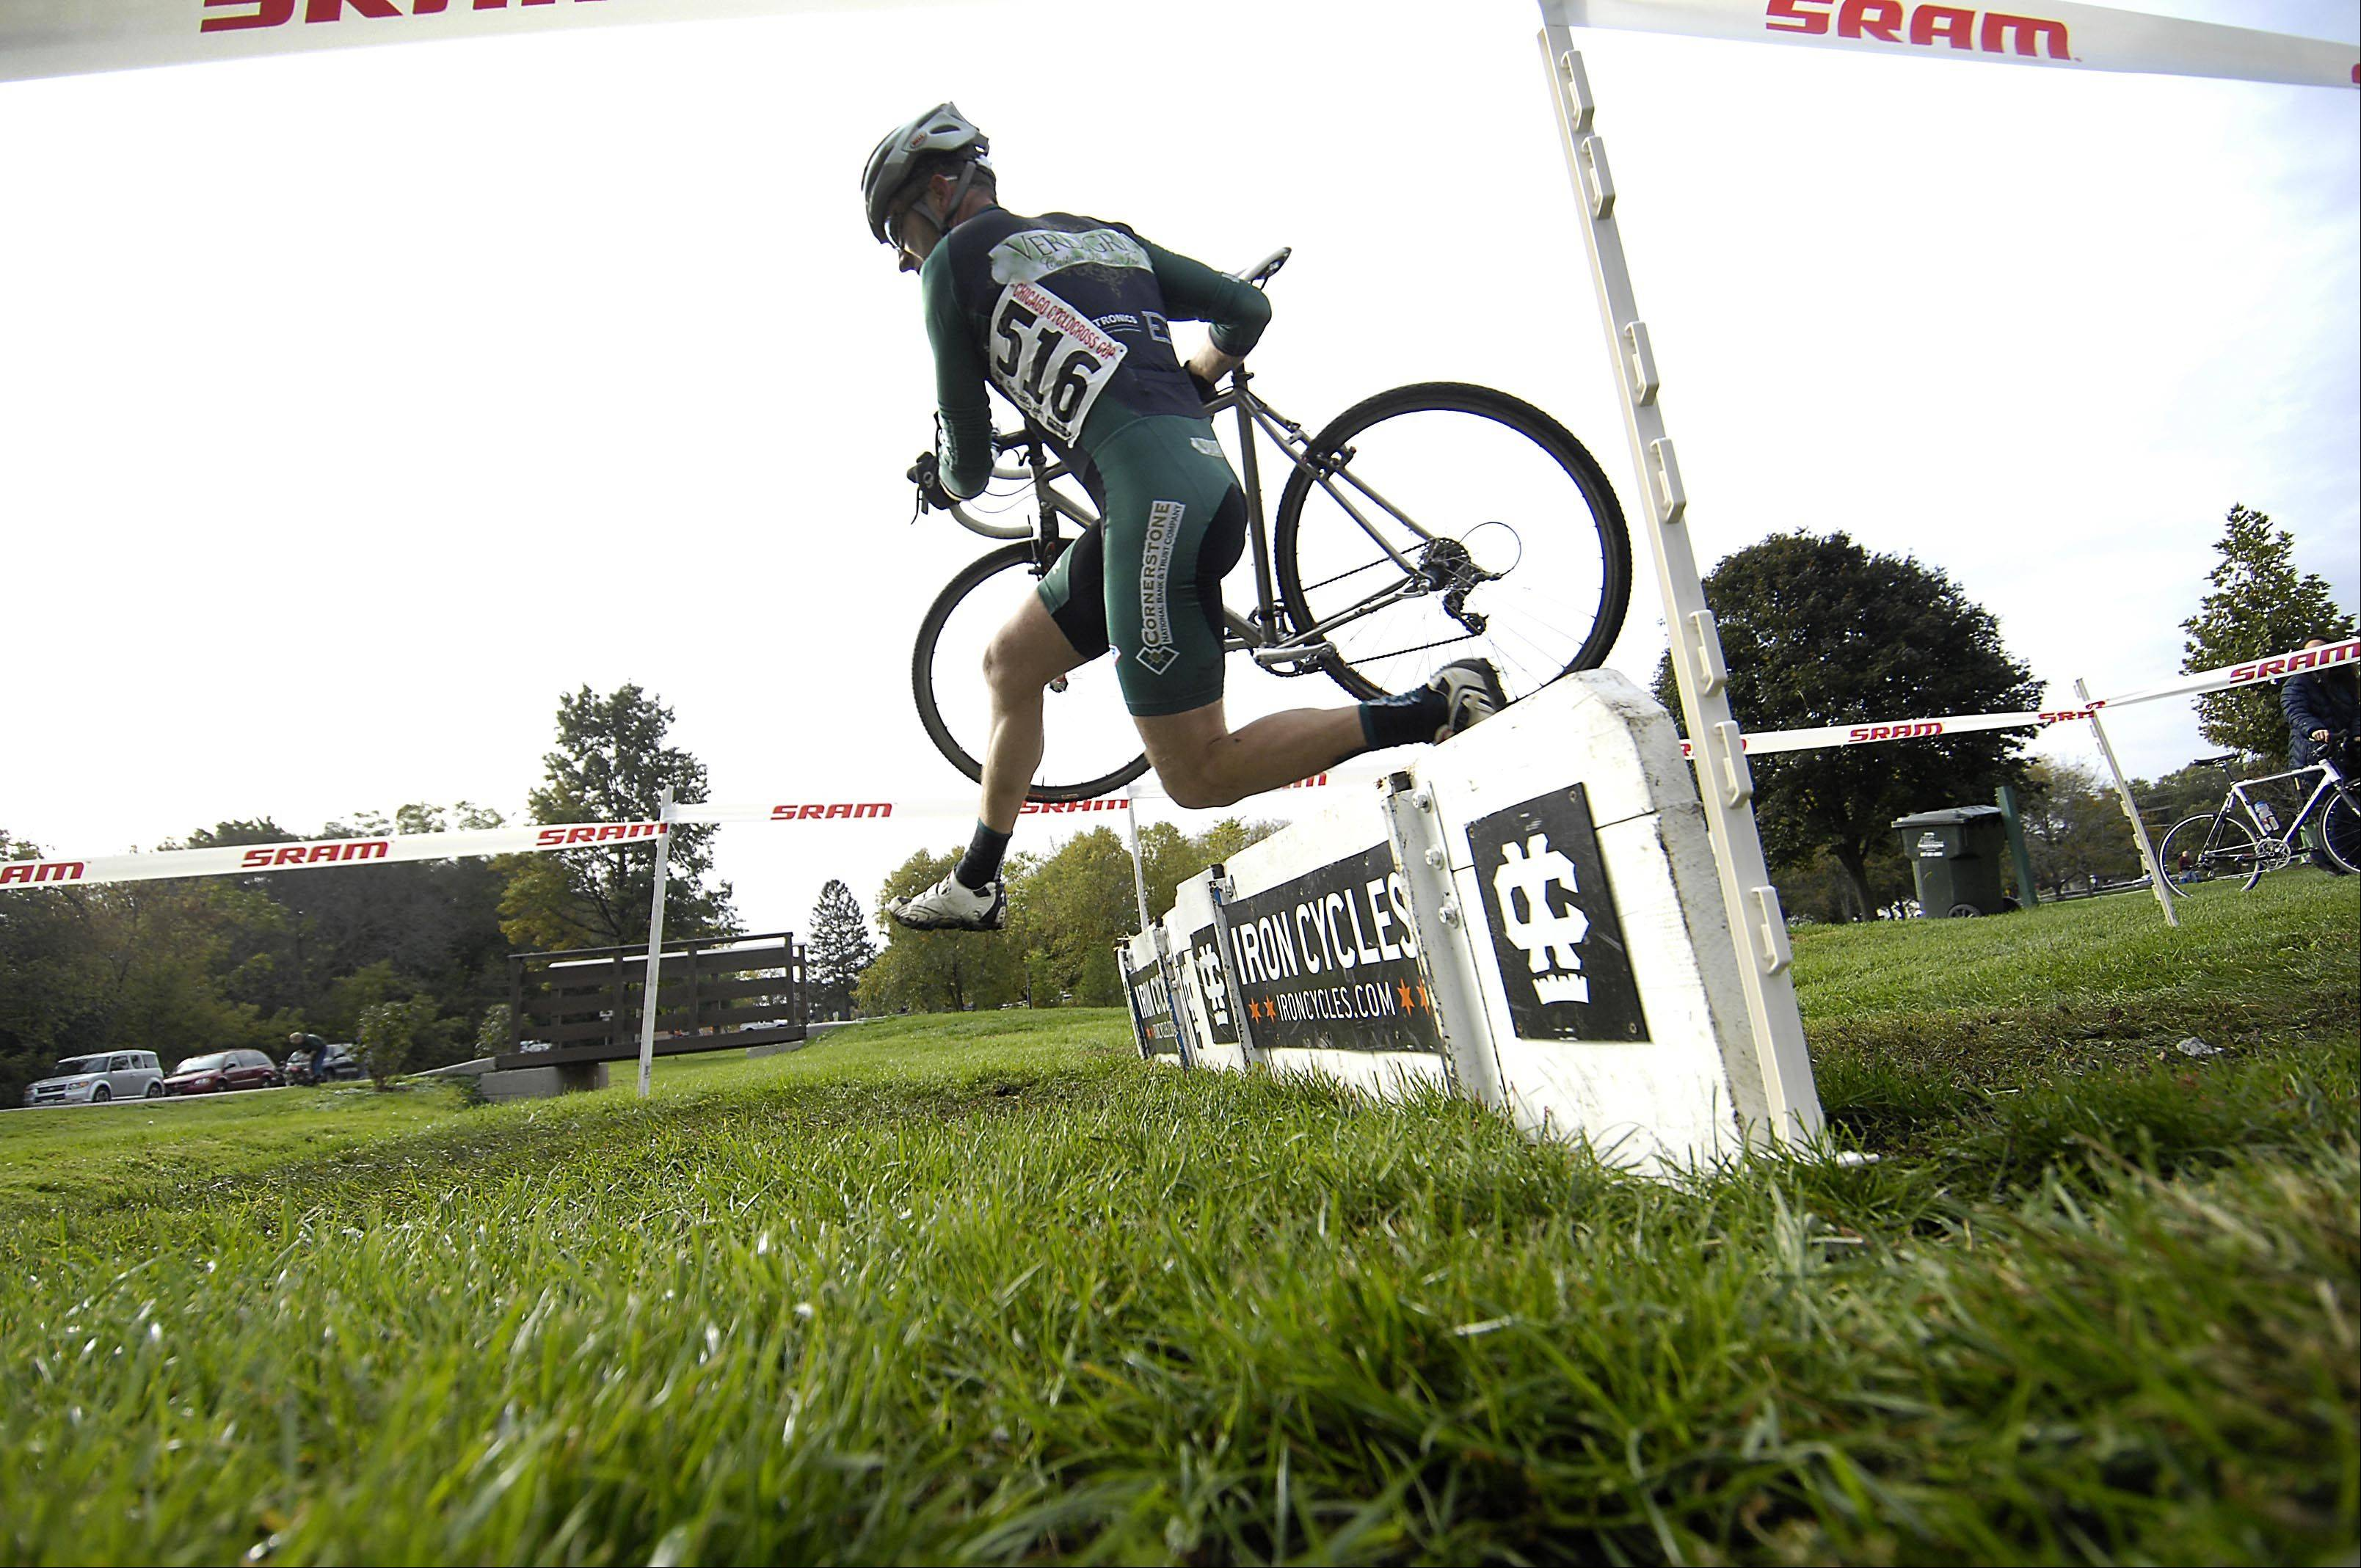 Brian Dougherty, 41, of Elgin, leaps over an obstacle Sunday at the Chicago Cyclocross Cup bicycle races at Carpenter Park in Carpentersville. Hundreds of racers competed in the off-road event.